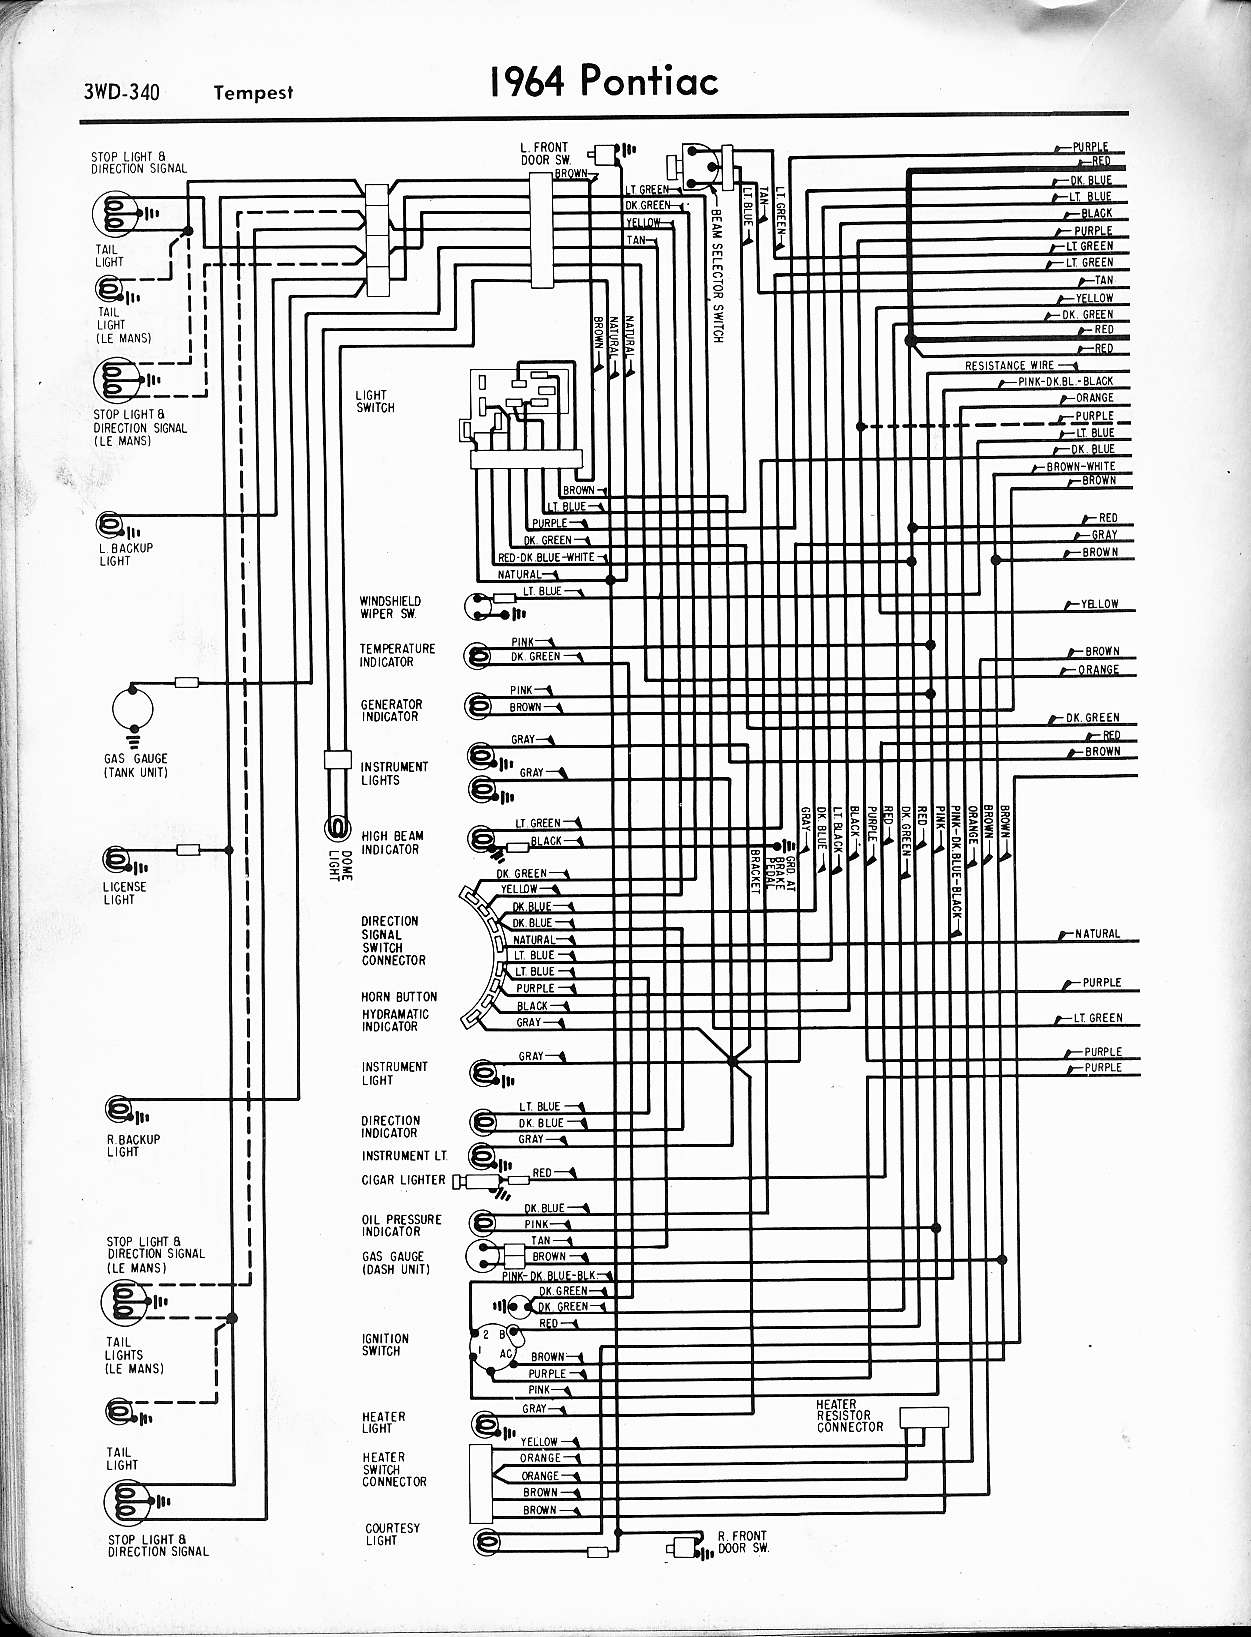 Marvelous 1965 4 Wire Alternator Diagram Wiring Diagram Dandim Mohammedshrine Wiring Diagrams Dandimmohammedshrineorg